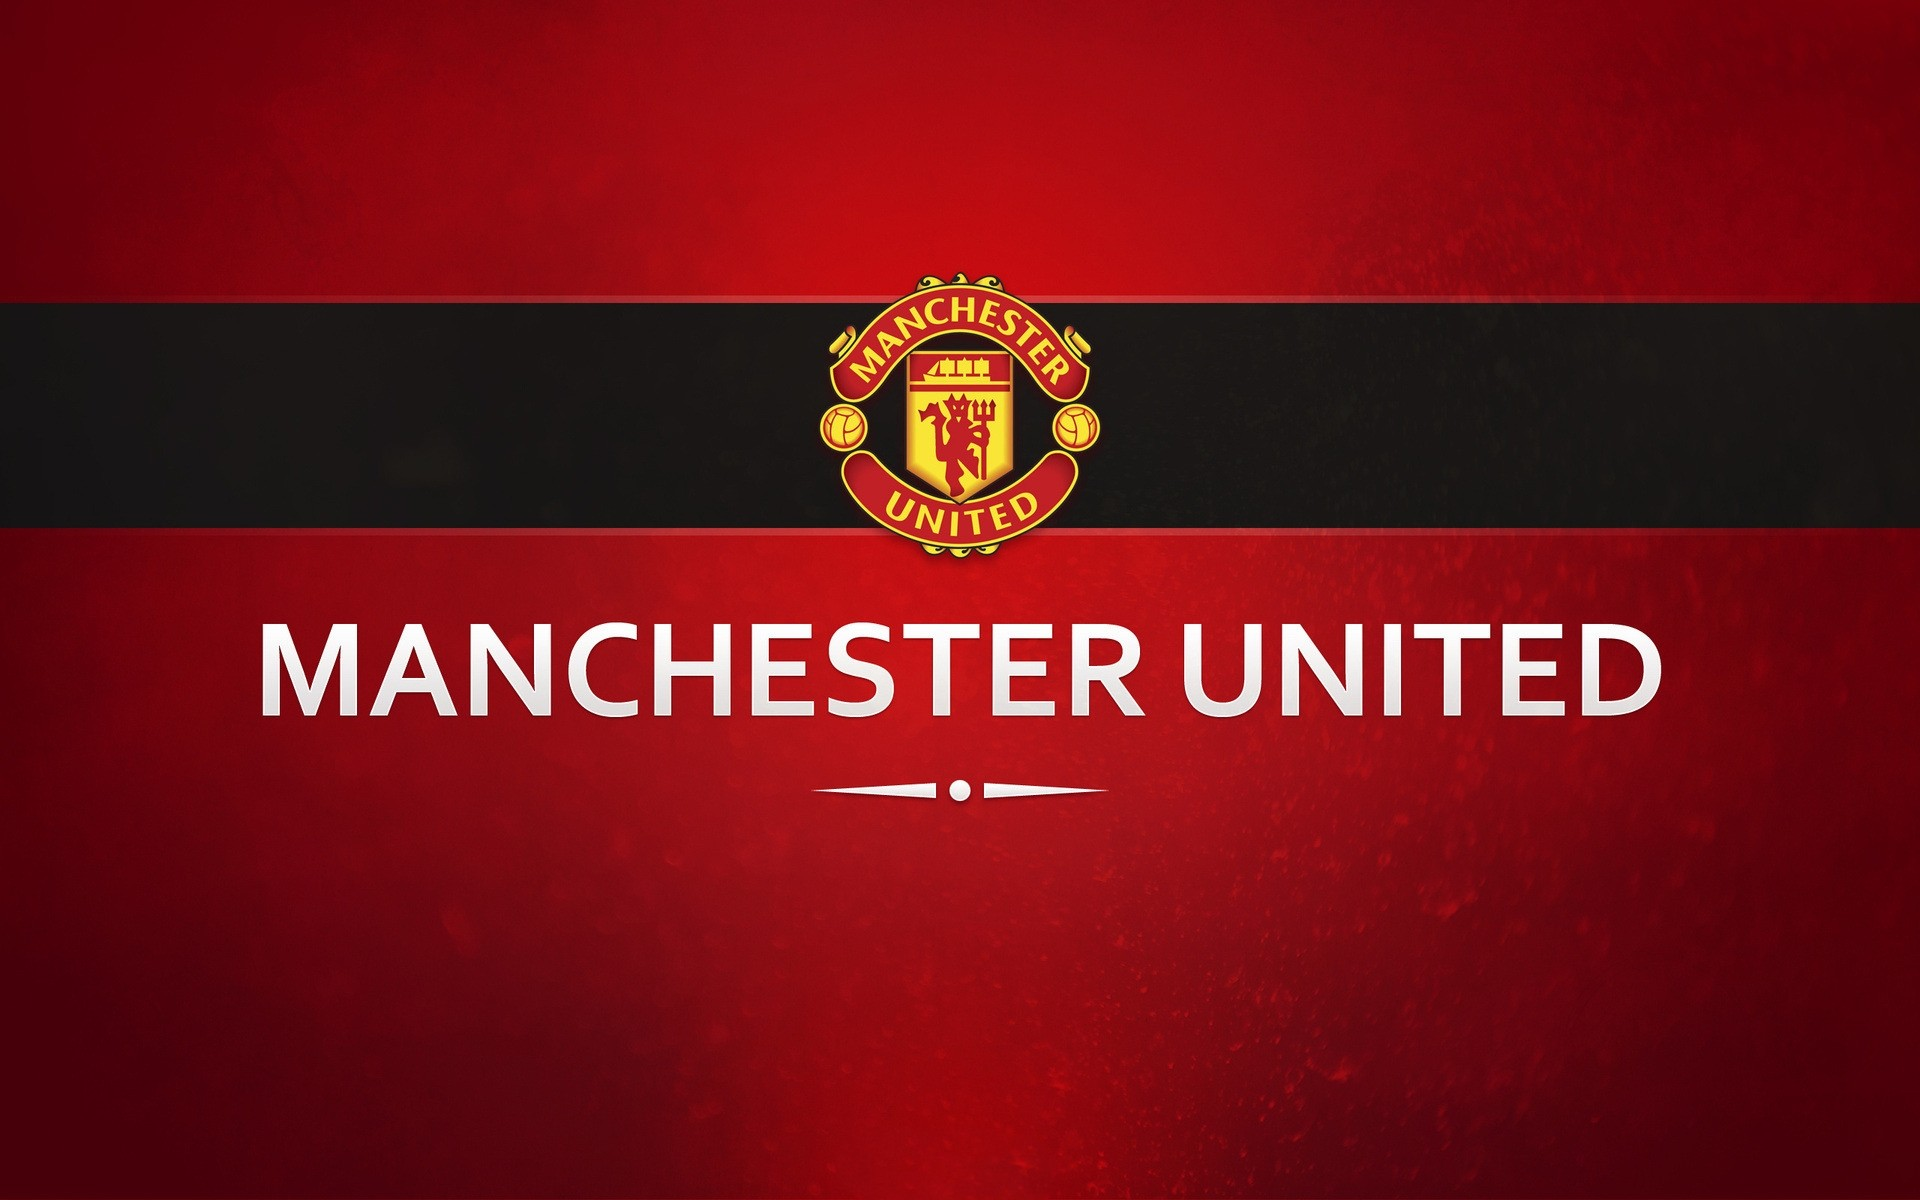 Manchester United Logo Android Wallpapers For Free